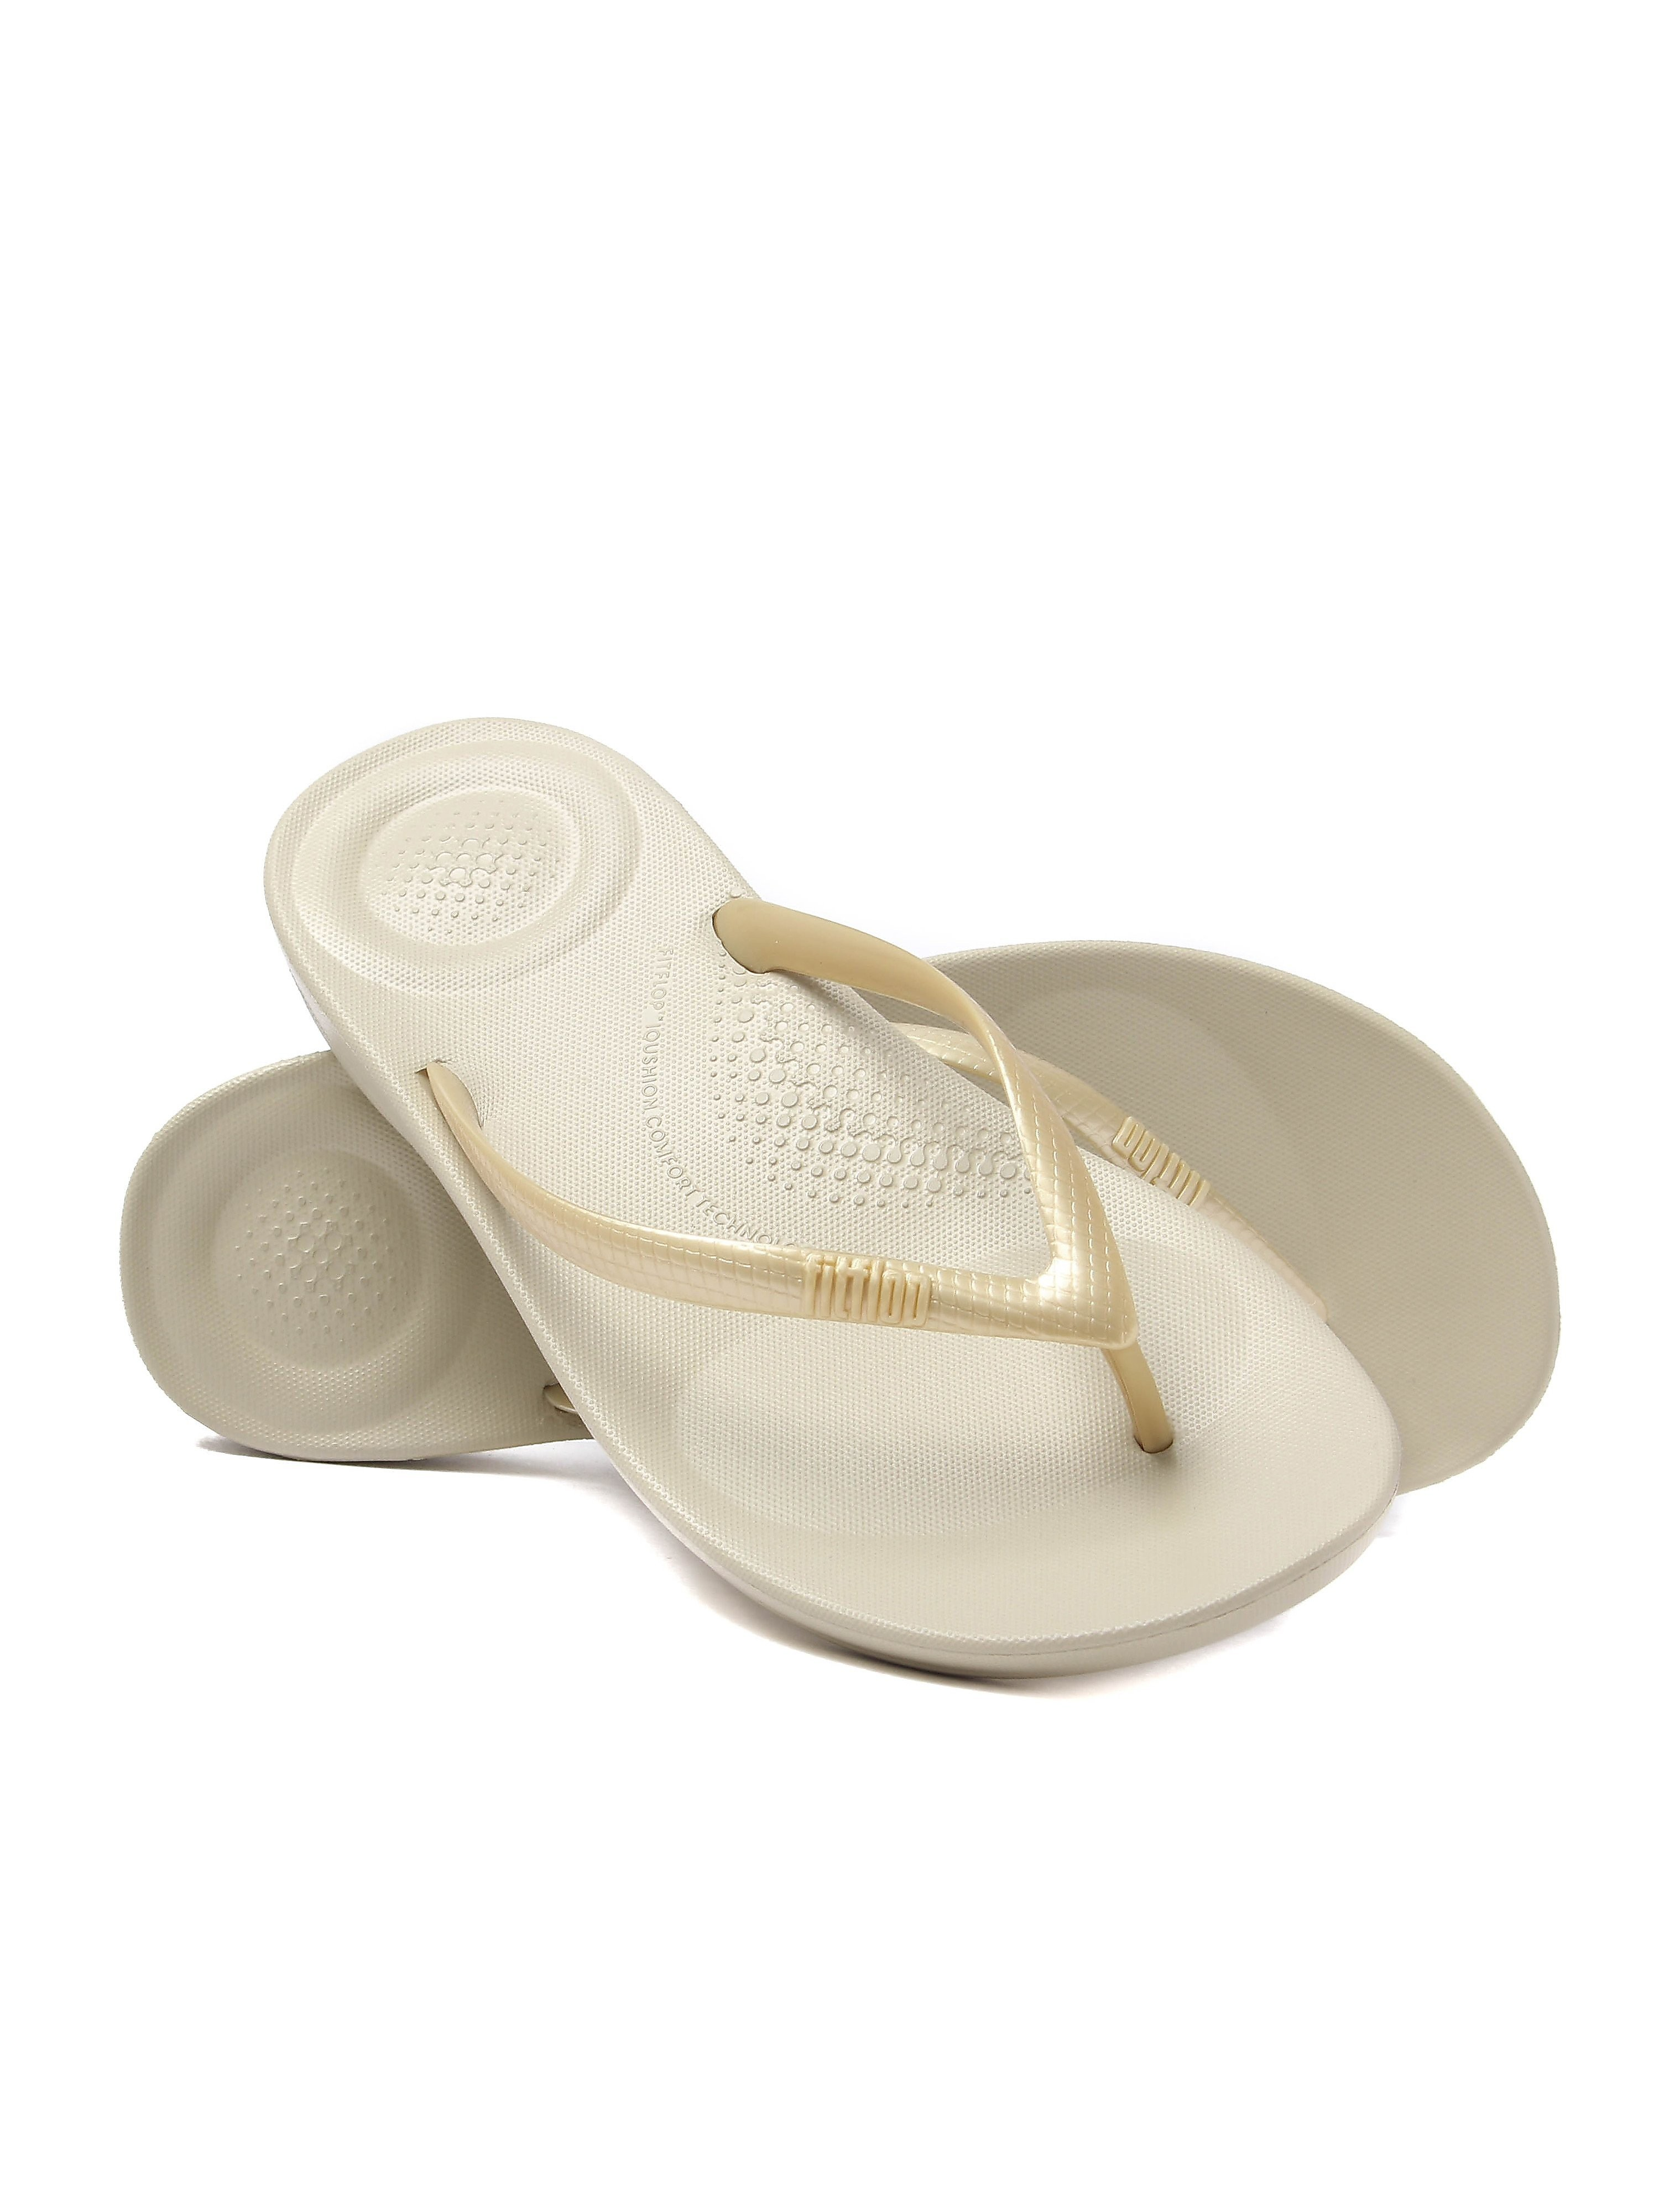 FitFlop Women's iQUSHION Ergonomic Flip Flops - Gold